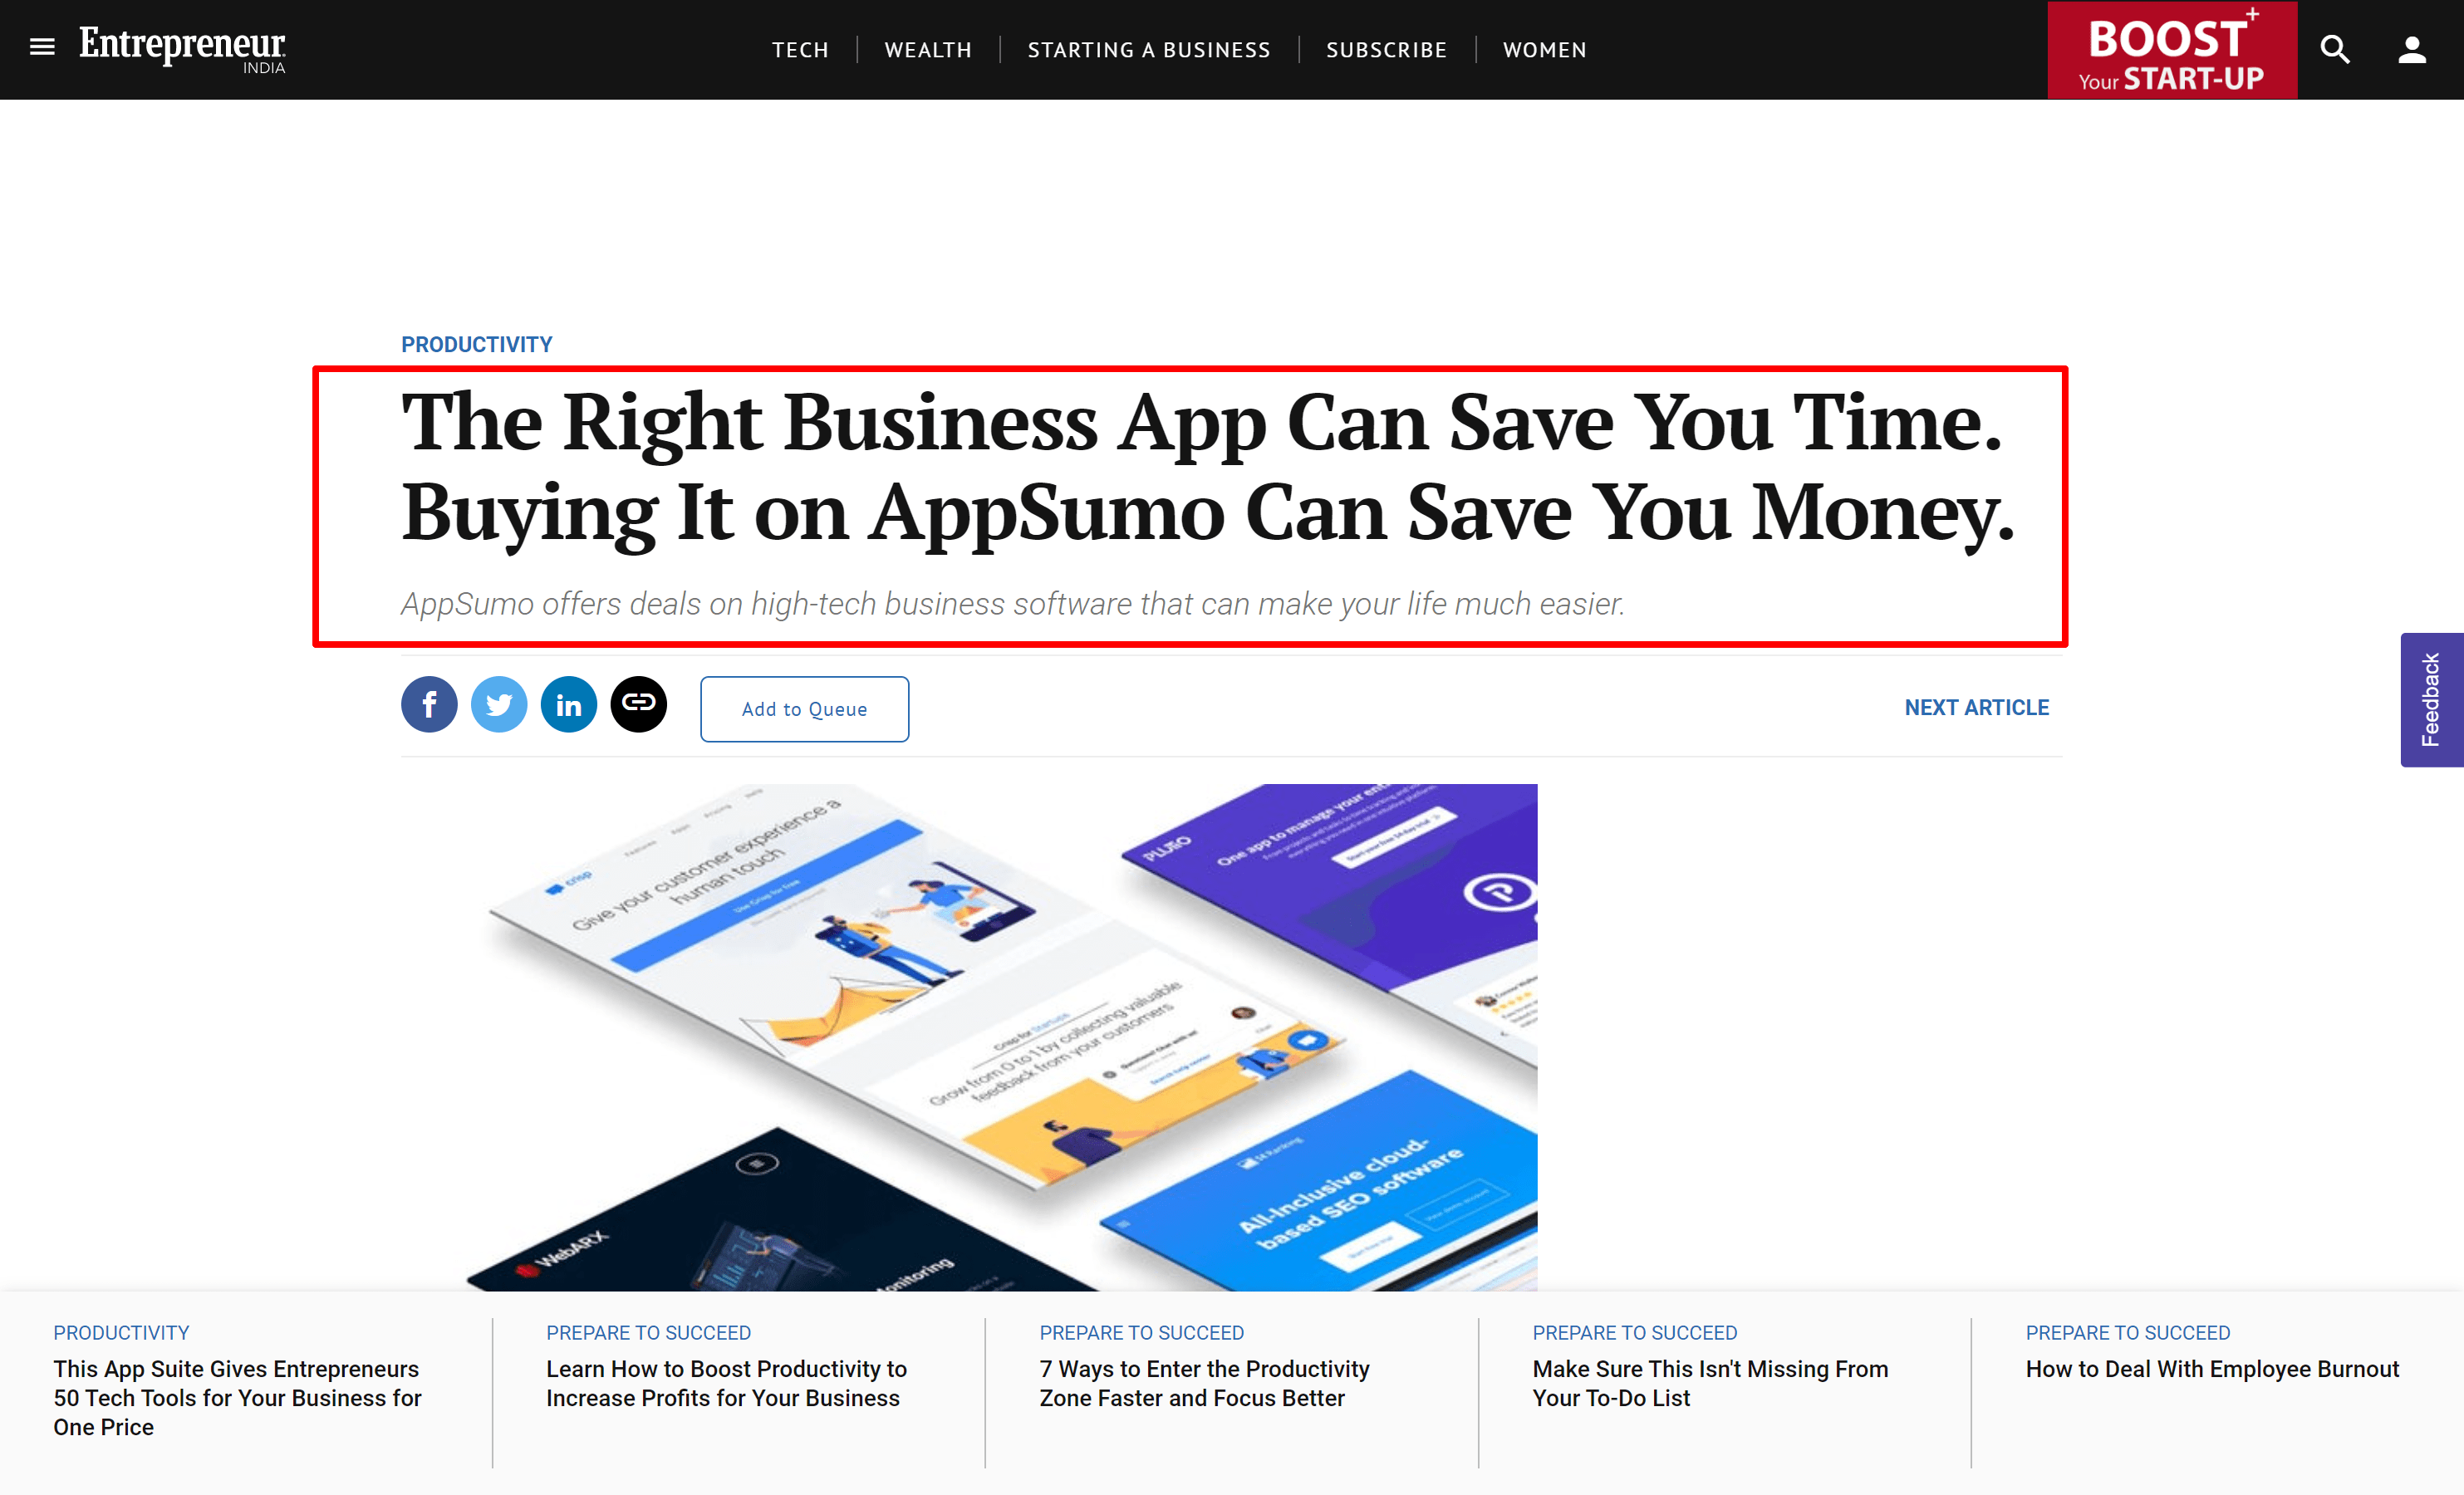 Appsumo mention- appsumo deals and coupons